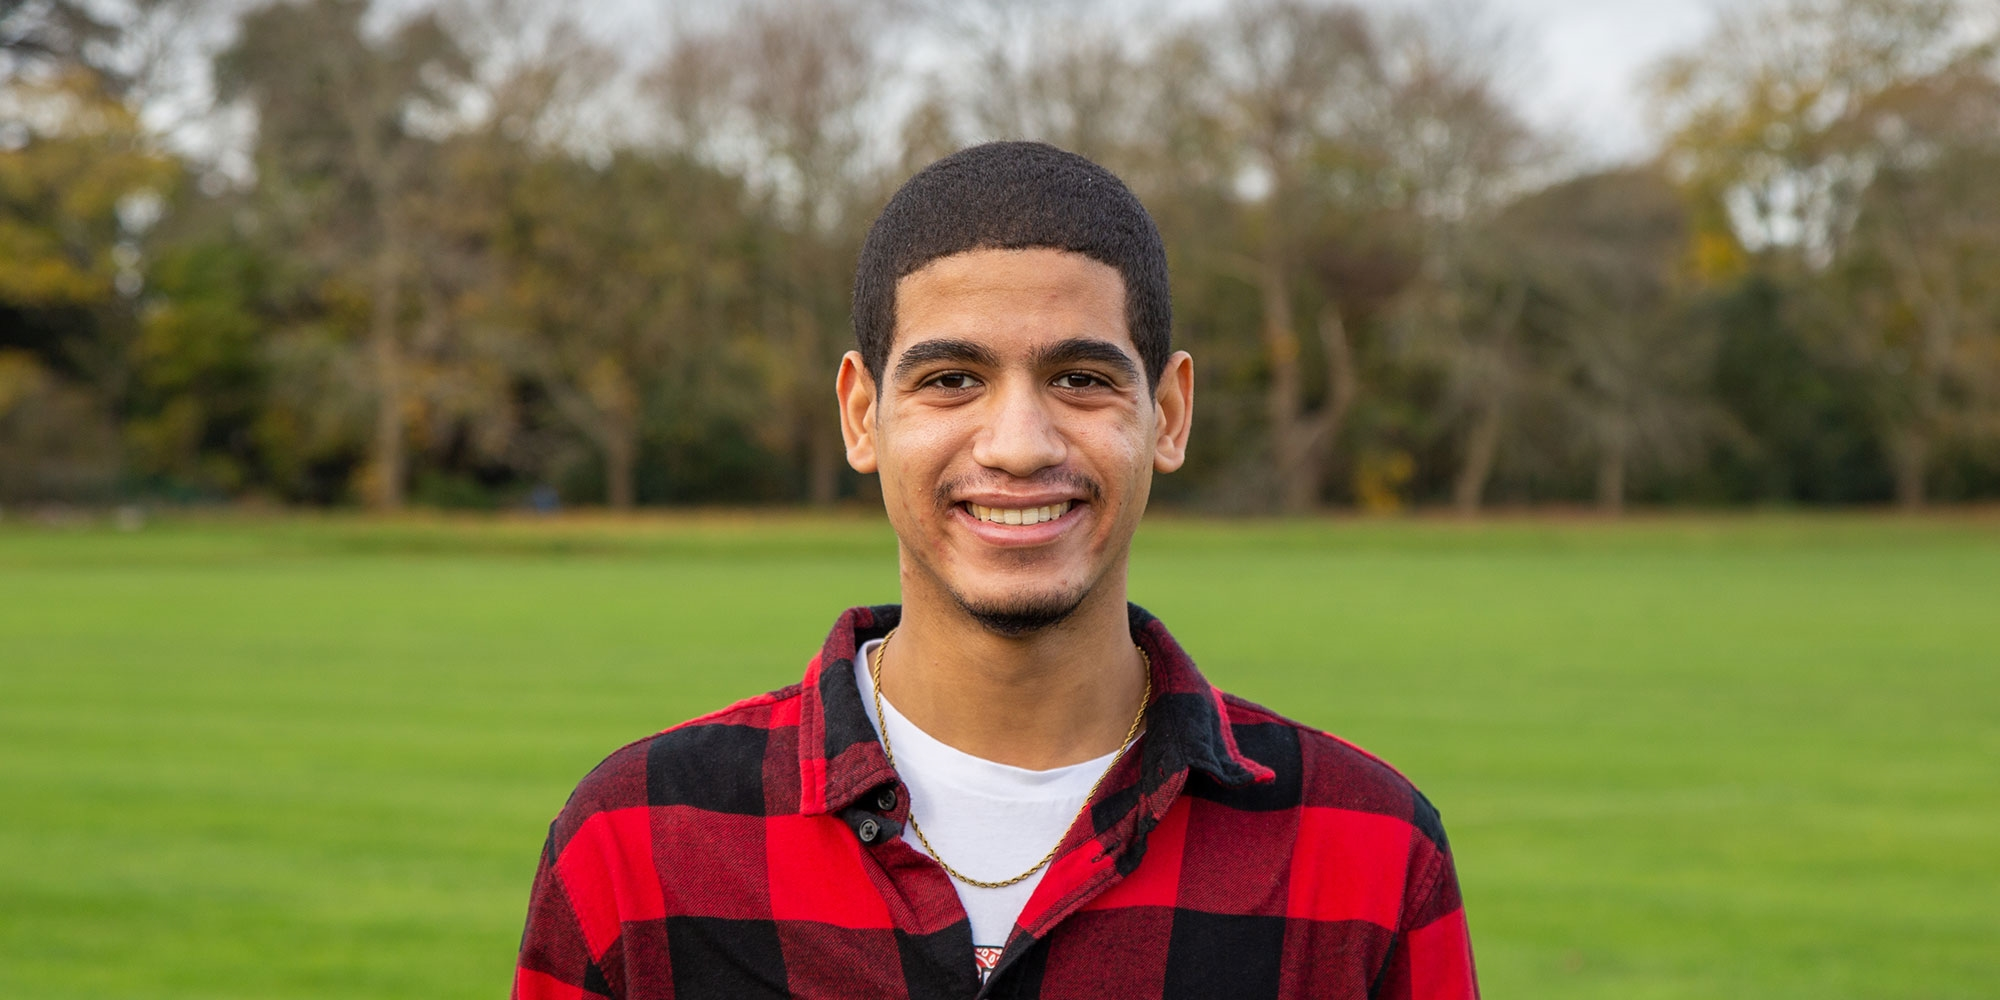 Ricardo Aguiar represents the views and interests of Black and Minority Ethnic Students on Student Council and to the University